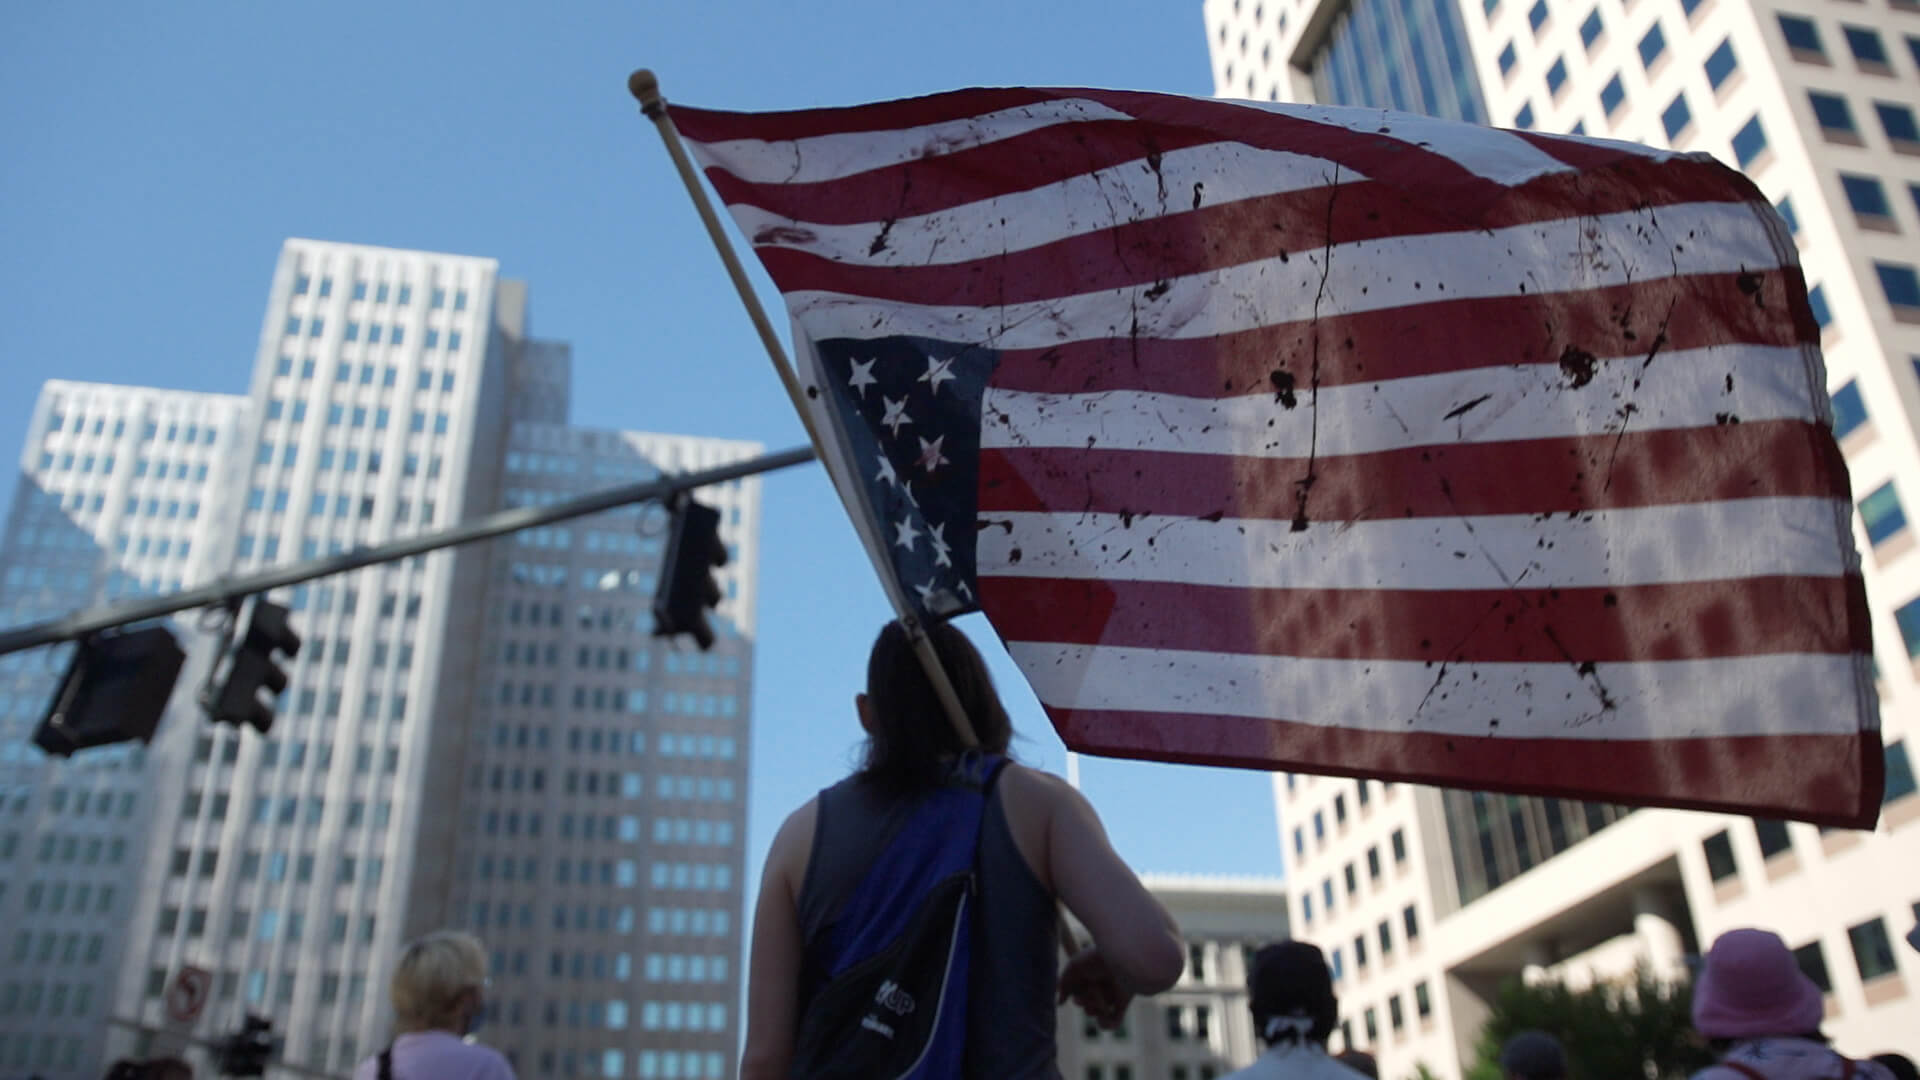 A demonstrator holds an upside down American flag as protesters circle around the intersection of Stanwix Street and Liberty Avenue in downtown Pittsburgh on Sept. 5.